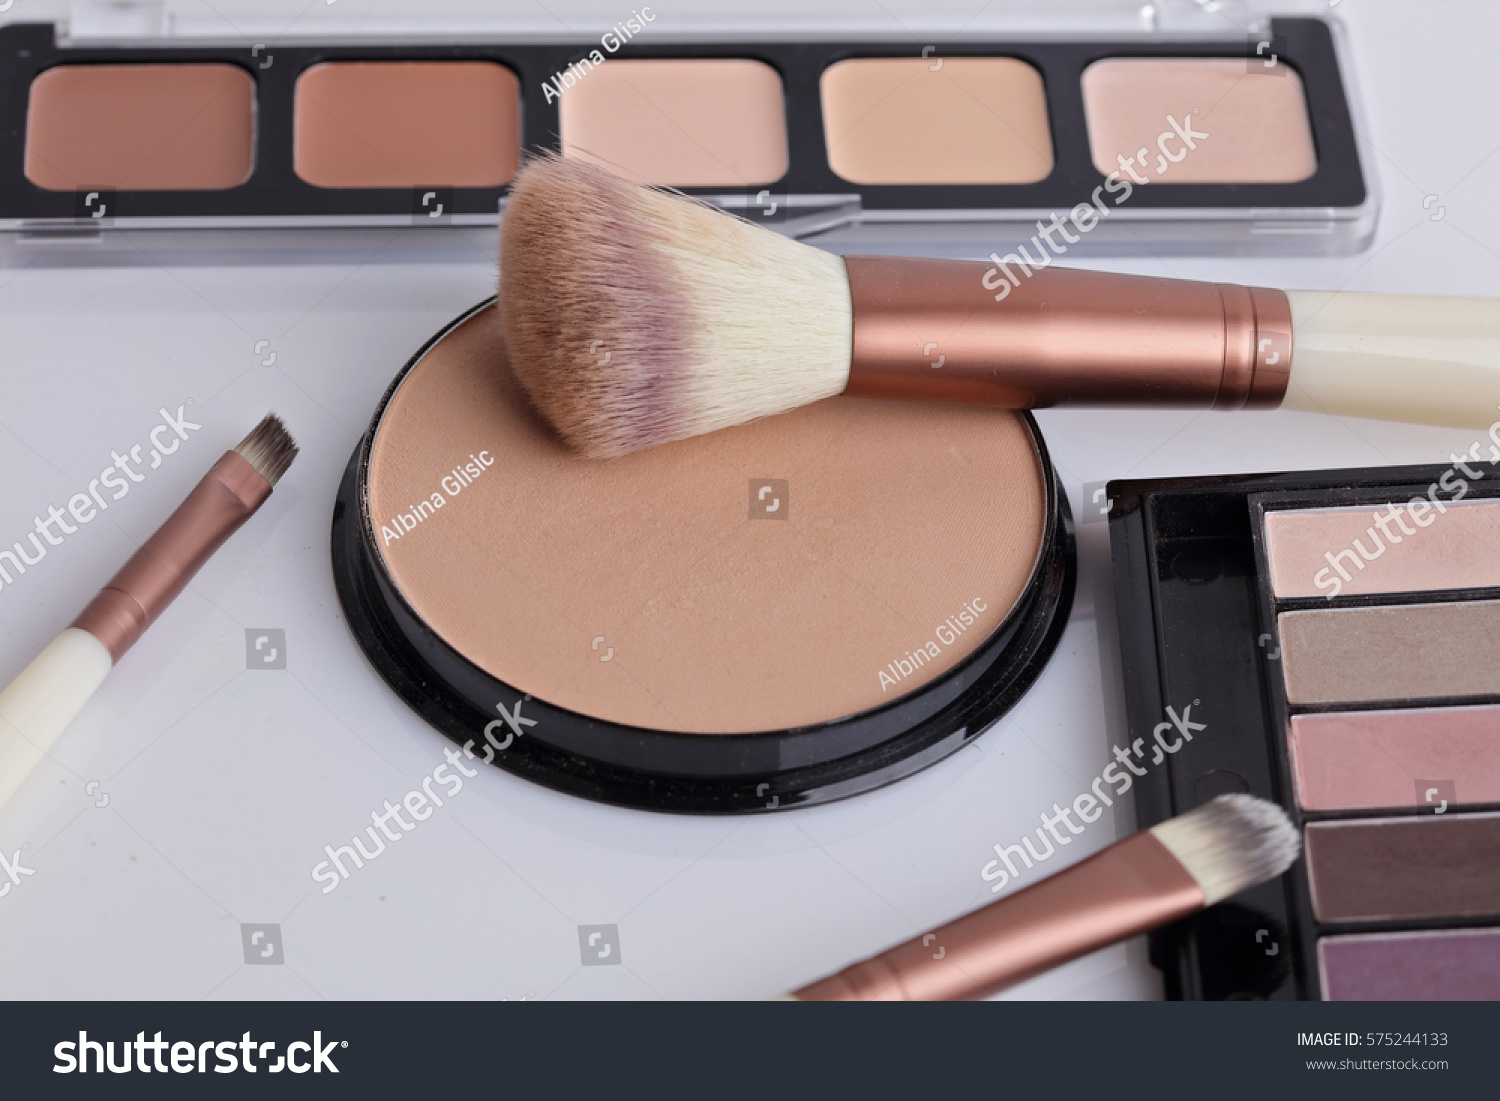 Foundation and compact powder